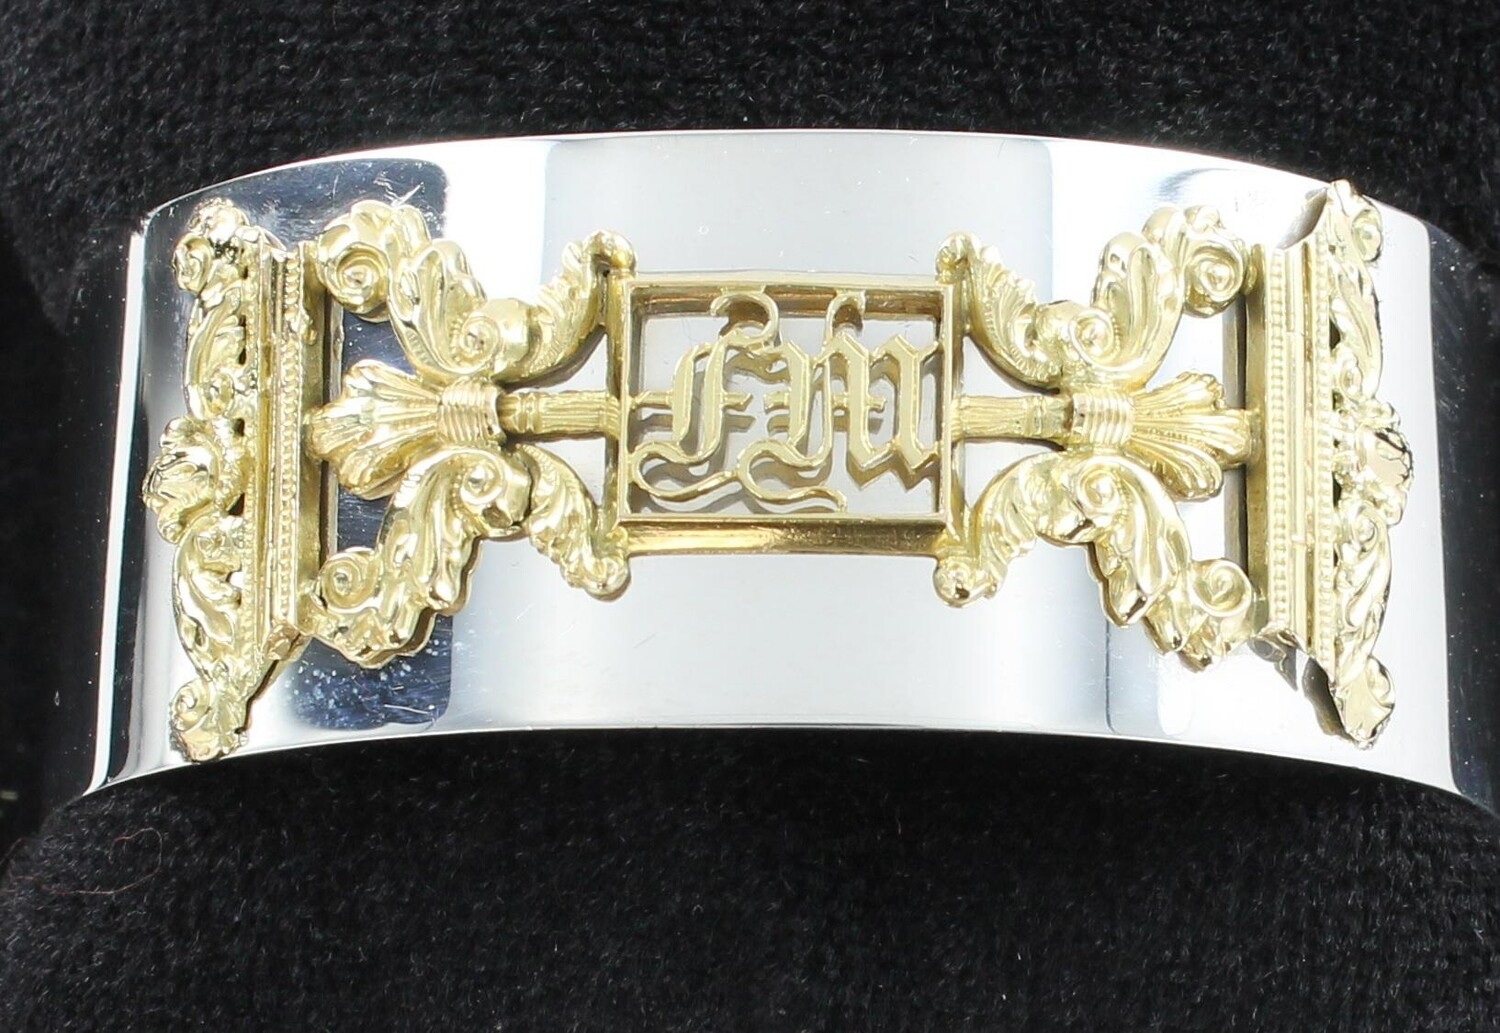 14 KT.YELLOW GOLD AND SILVER BRACELET